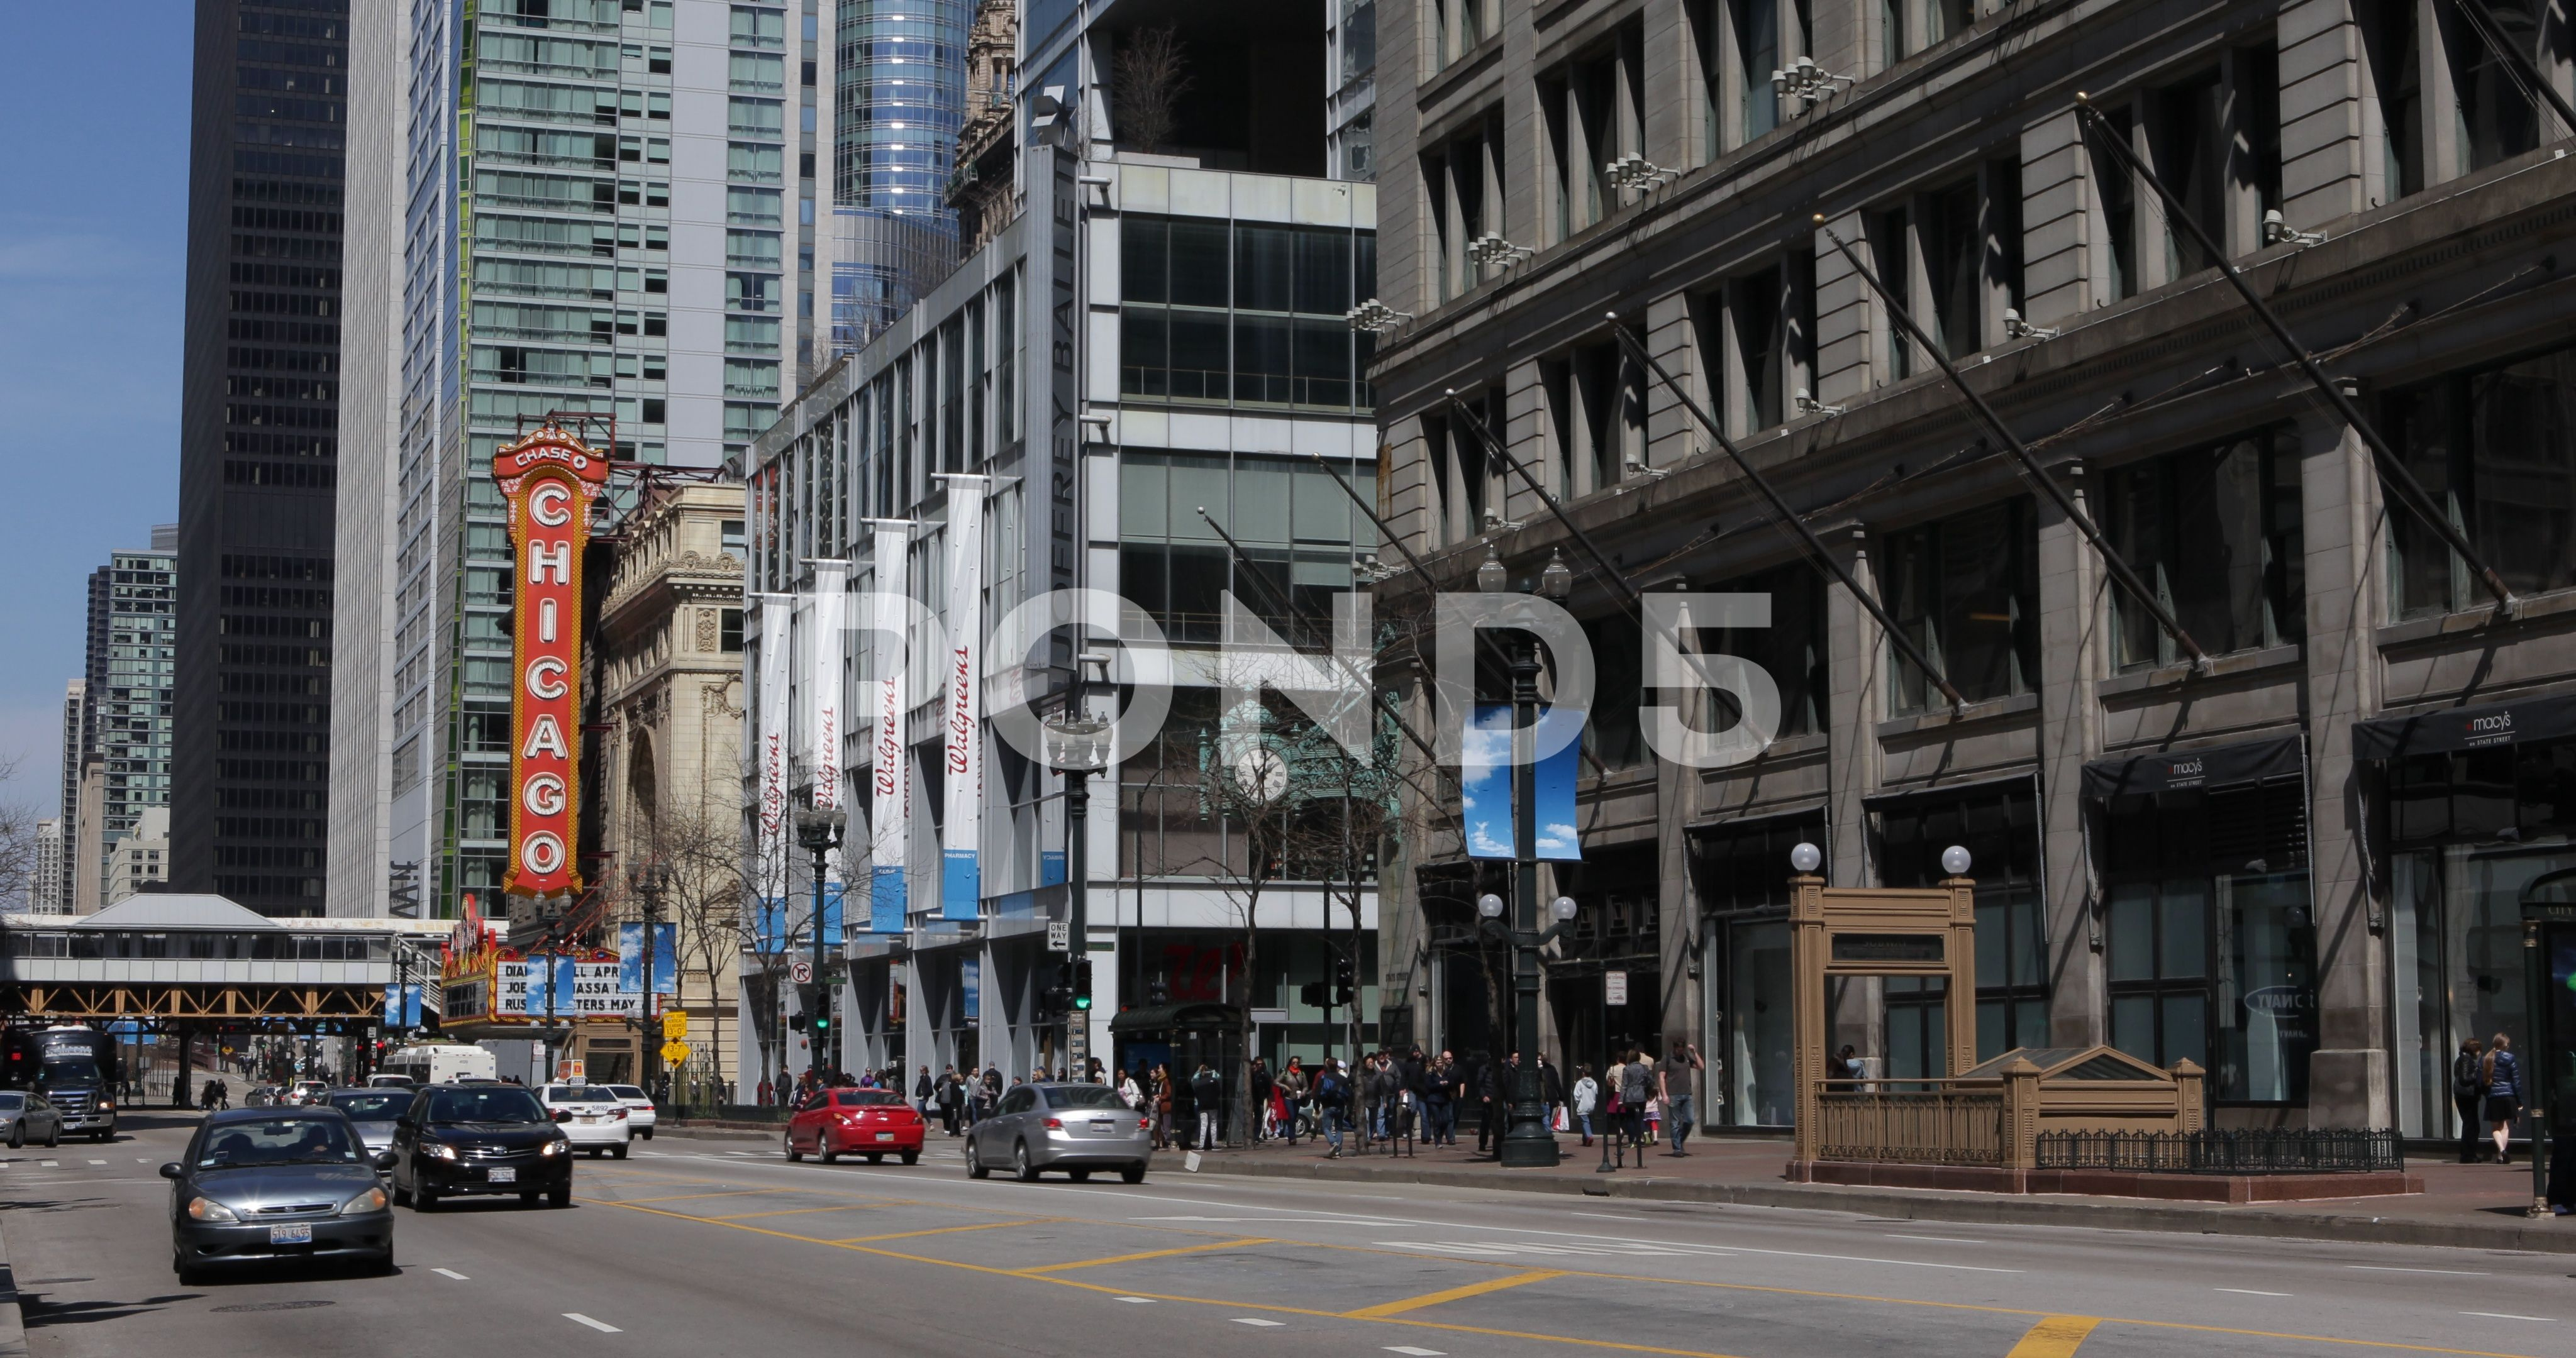 Chicago City with Cars Traffic on State Street and People Walk on Sidewalk Day TrafficStateStreetChicago